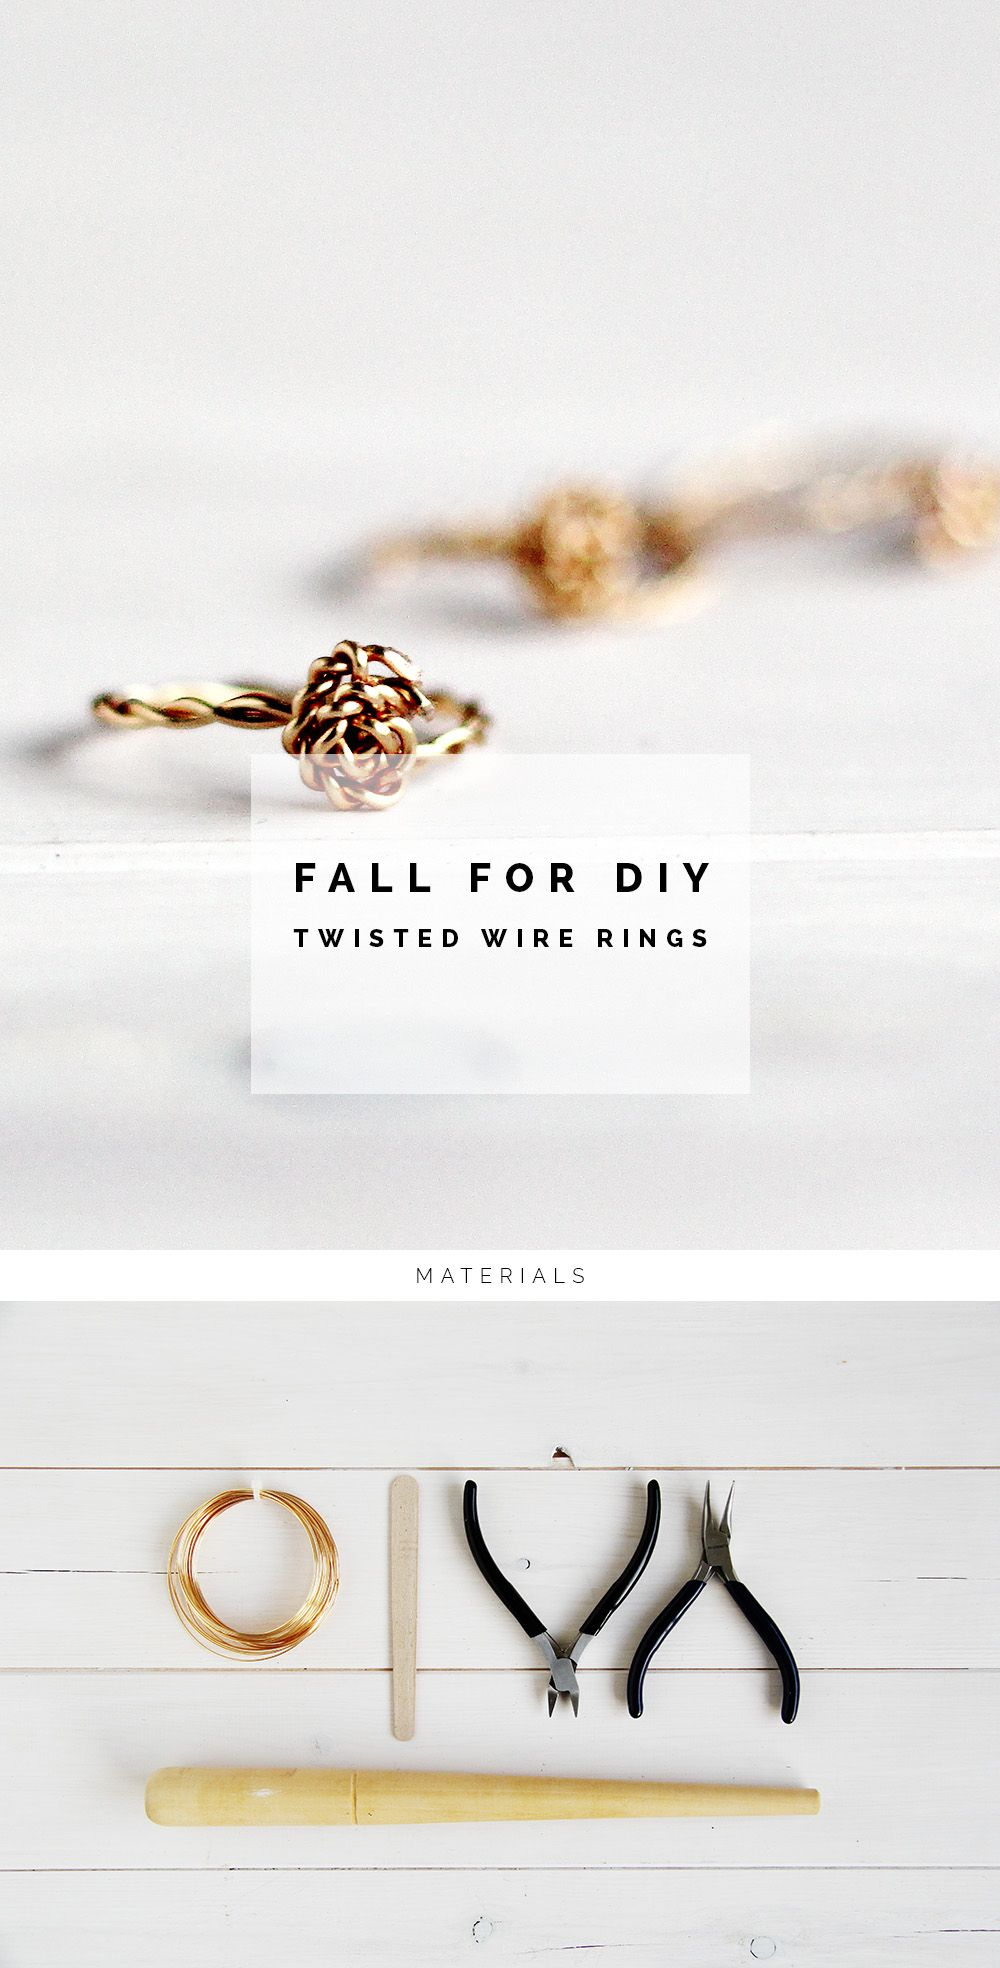 DIY twist & knot wire rings | Pinterest | Wire rings tutorial, Ring ...